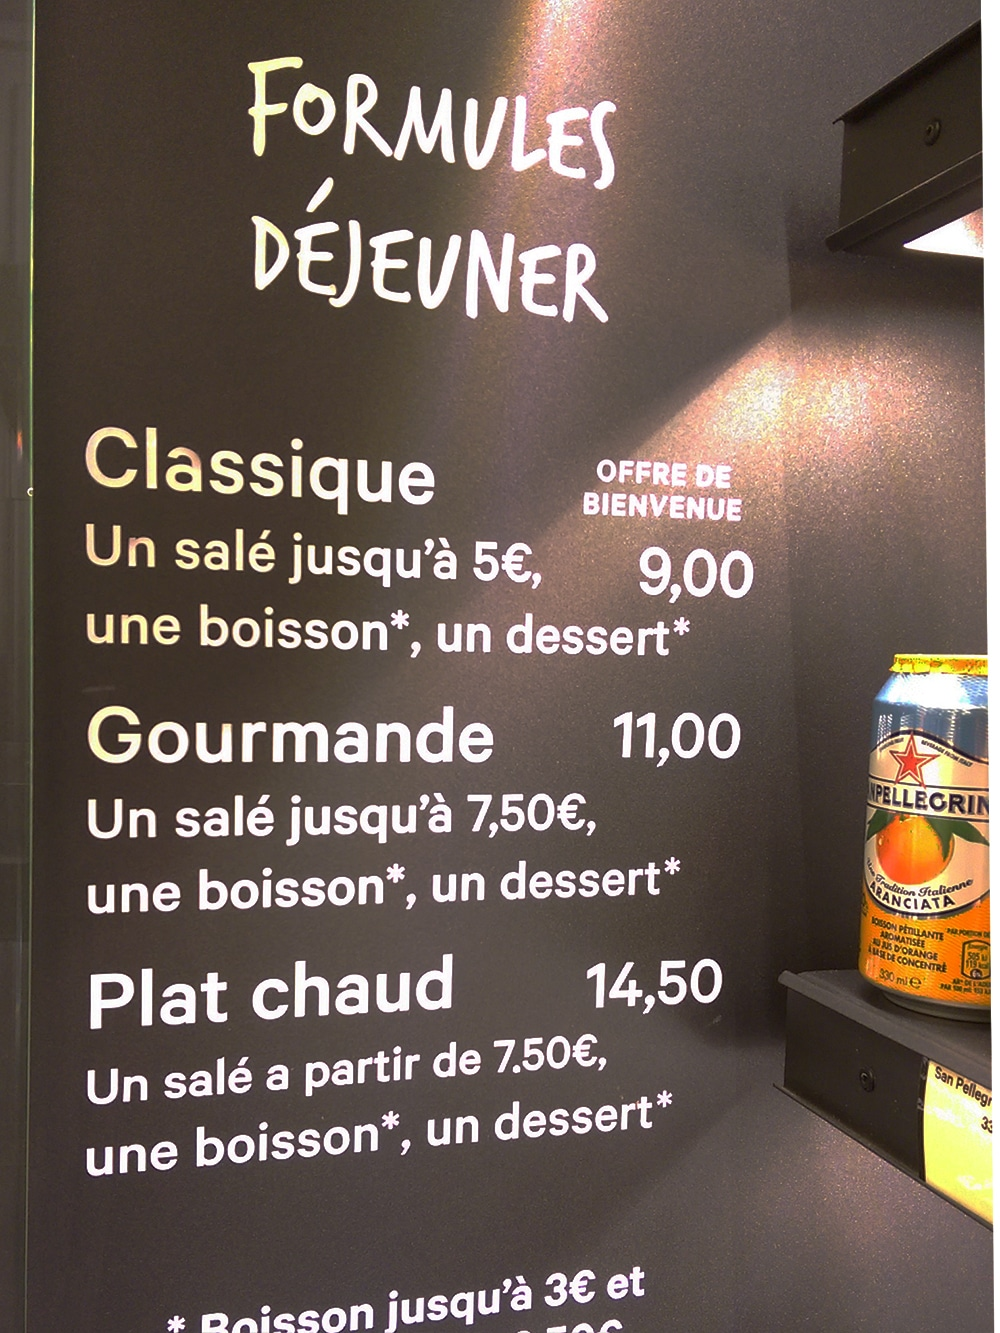 boulangerie-kayser-midore-big-wall-paris